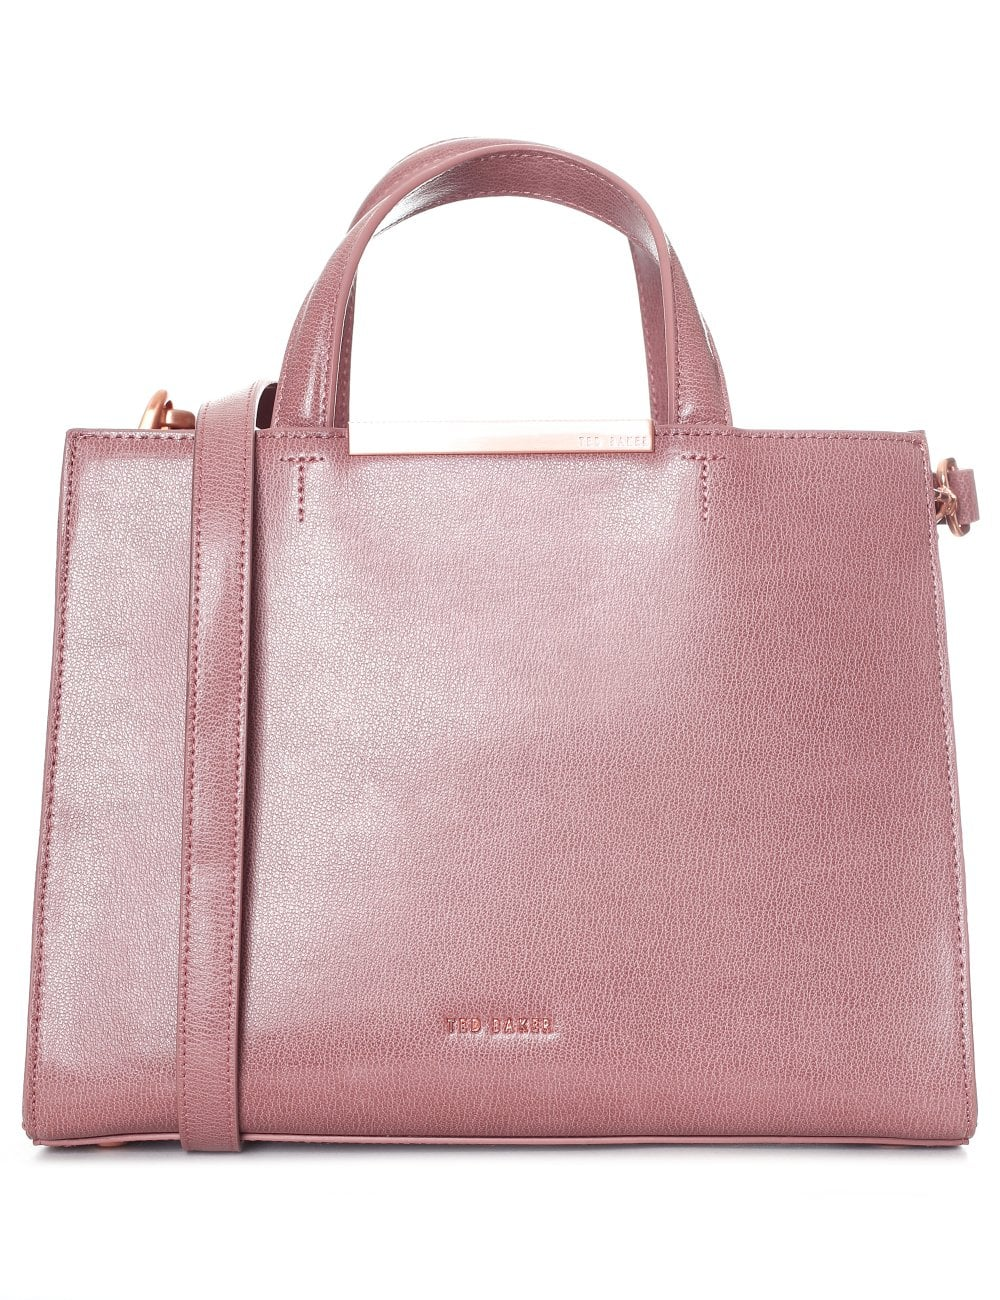 eae6e5ca8f25e TED BAKER MADALYN CORE LEATHER TOTE BAG